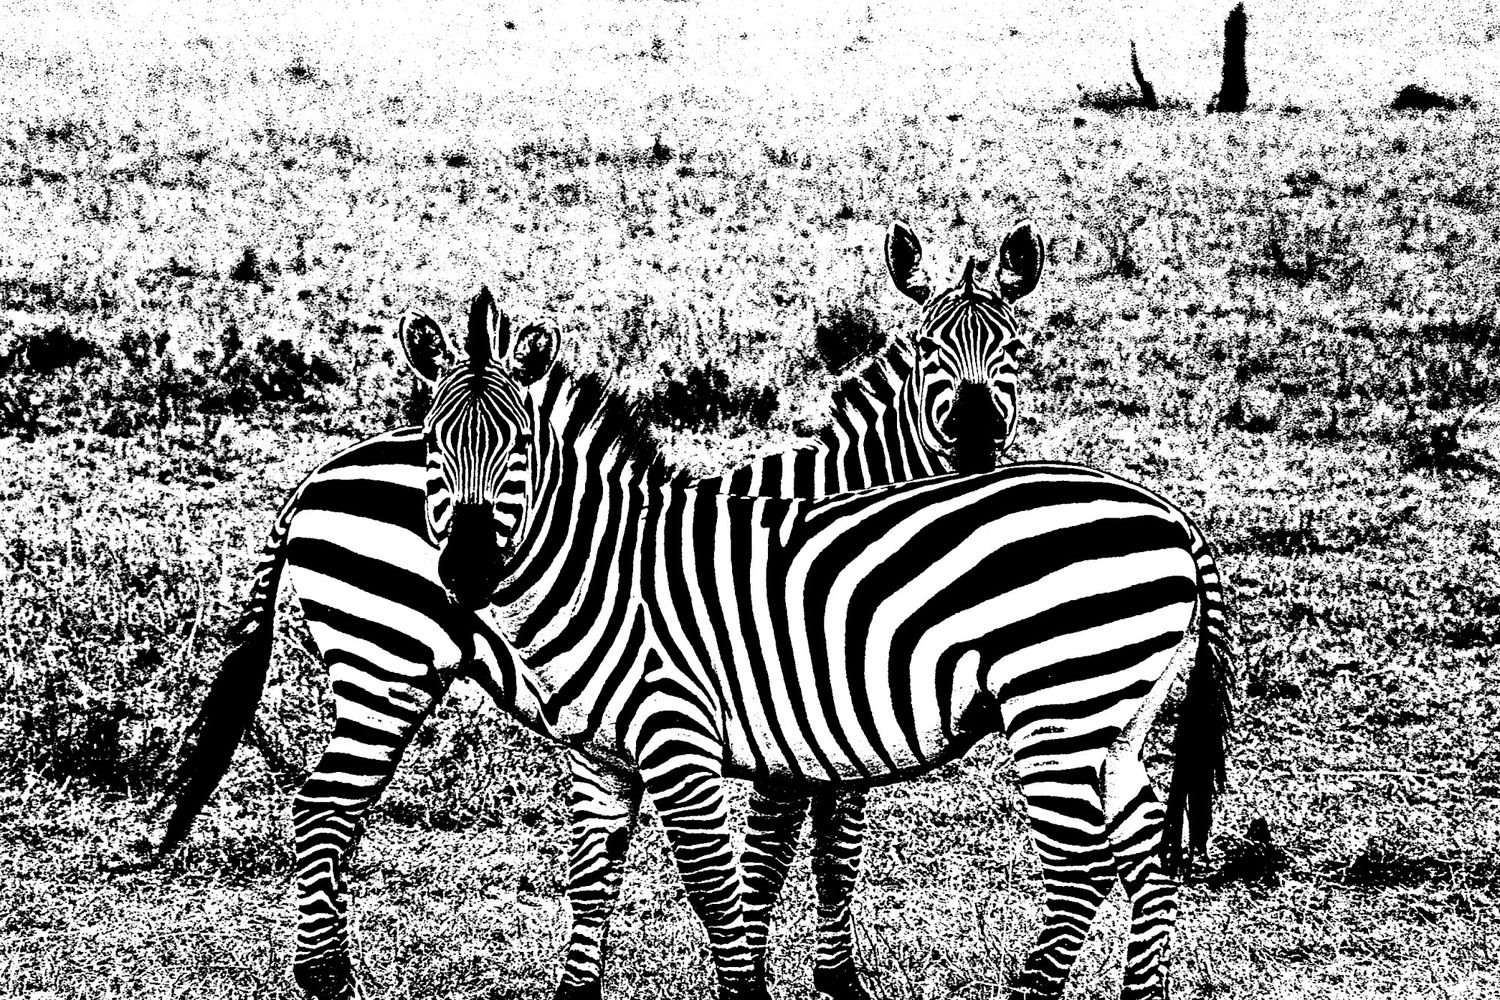 Zebra - 7, Serengeti 2016   Edition 1 of 2